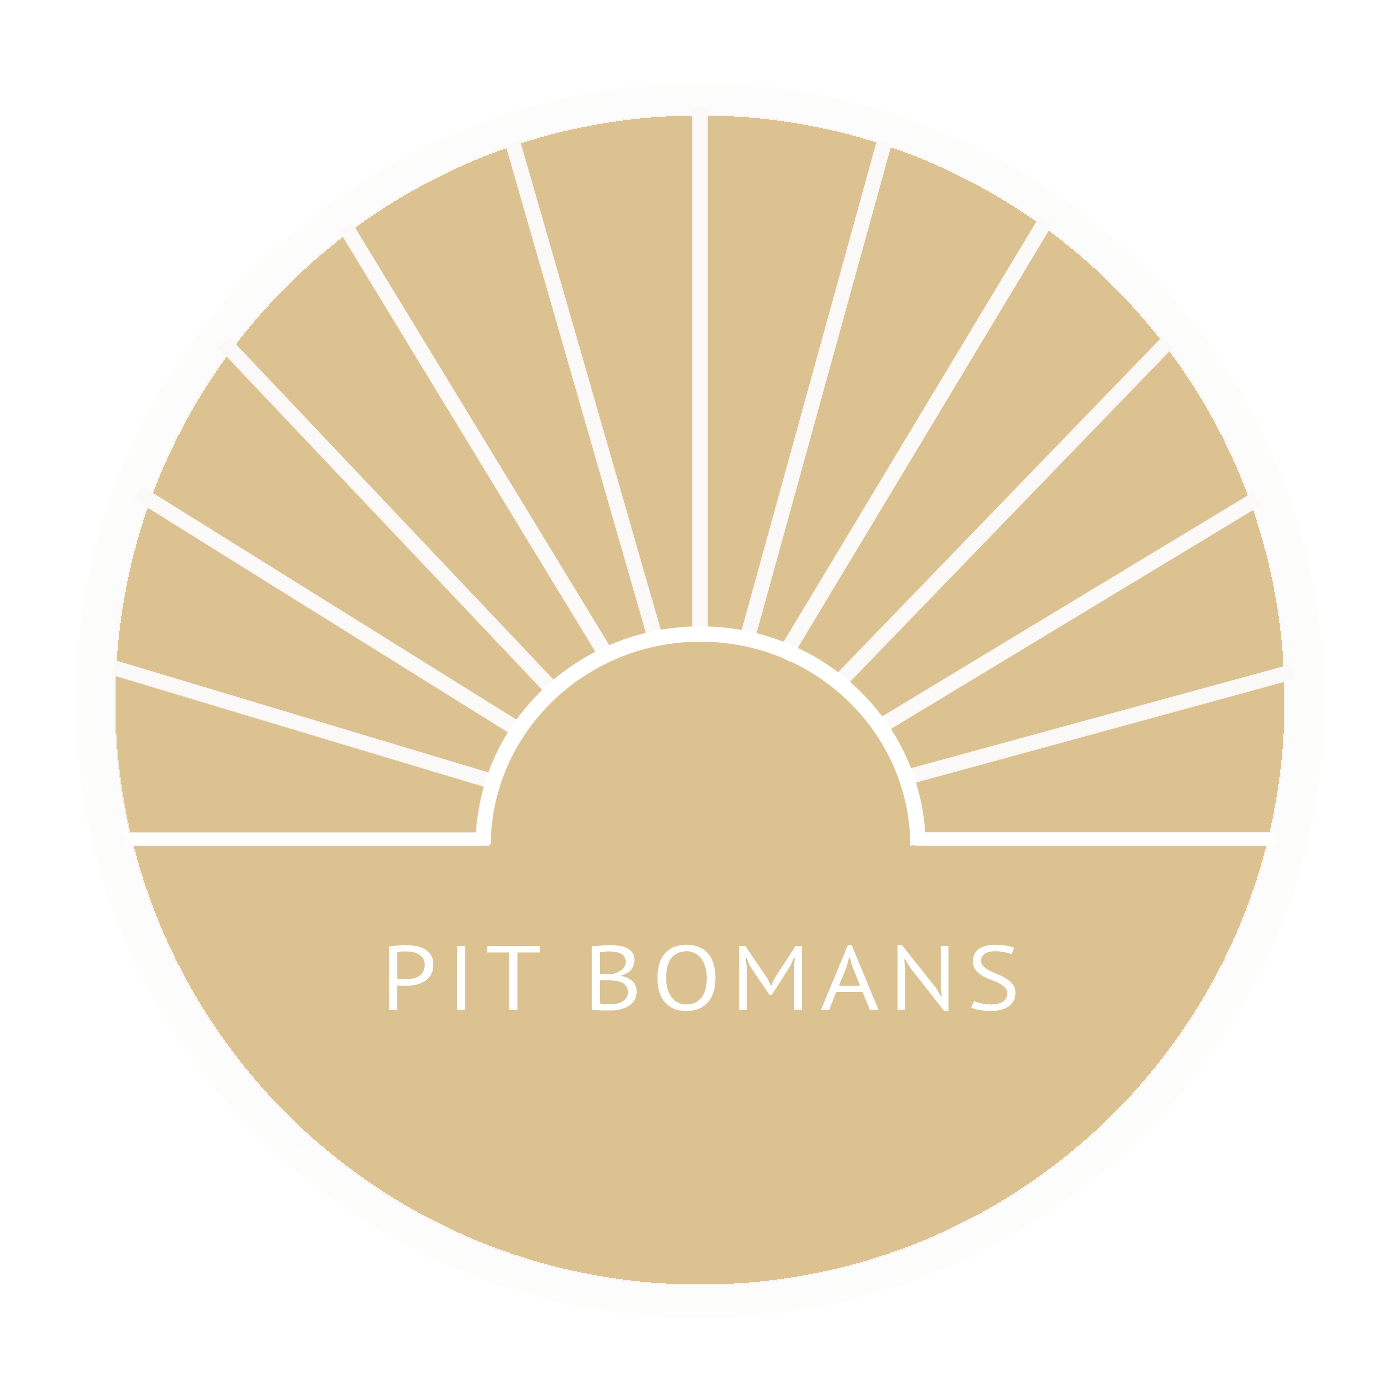 PIT BOMANS – Not your average jewelry.